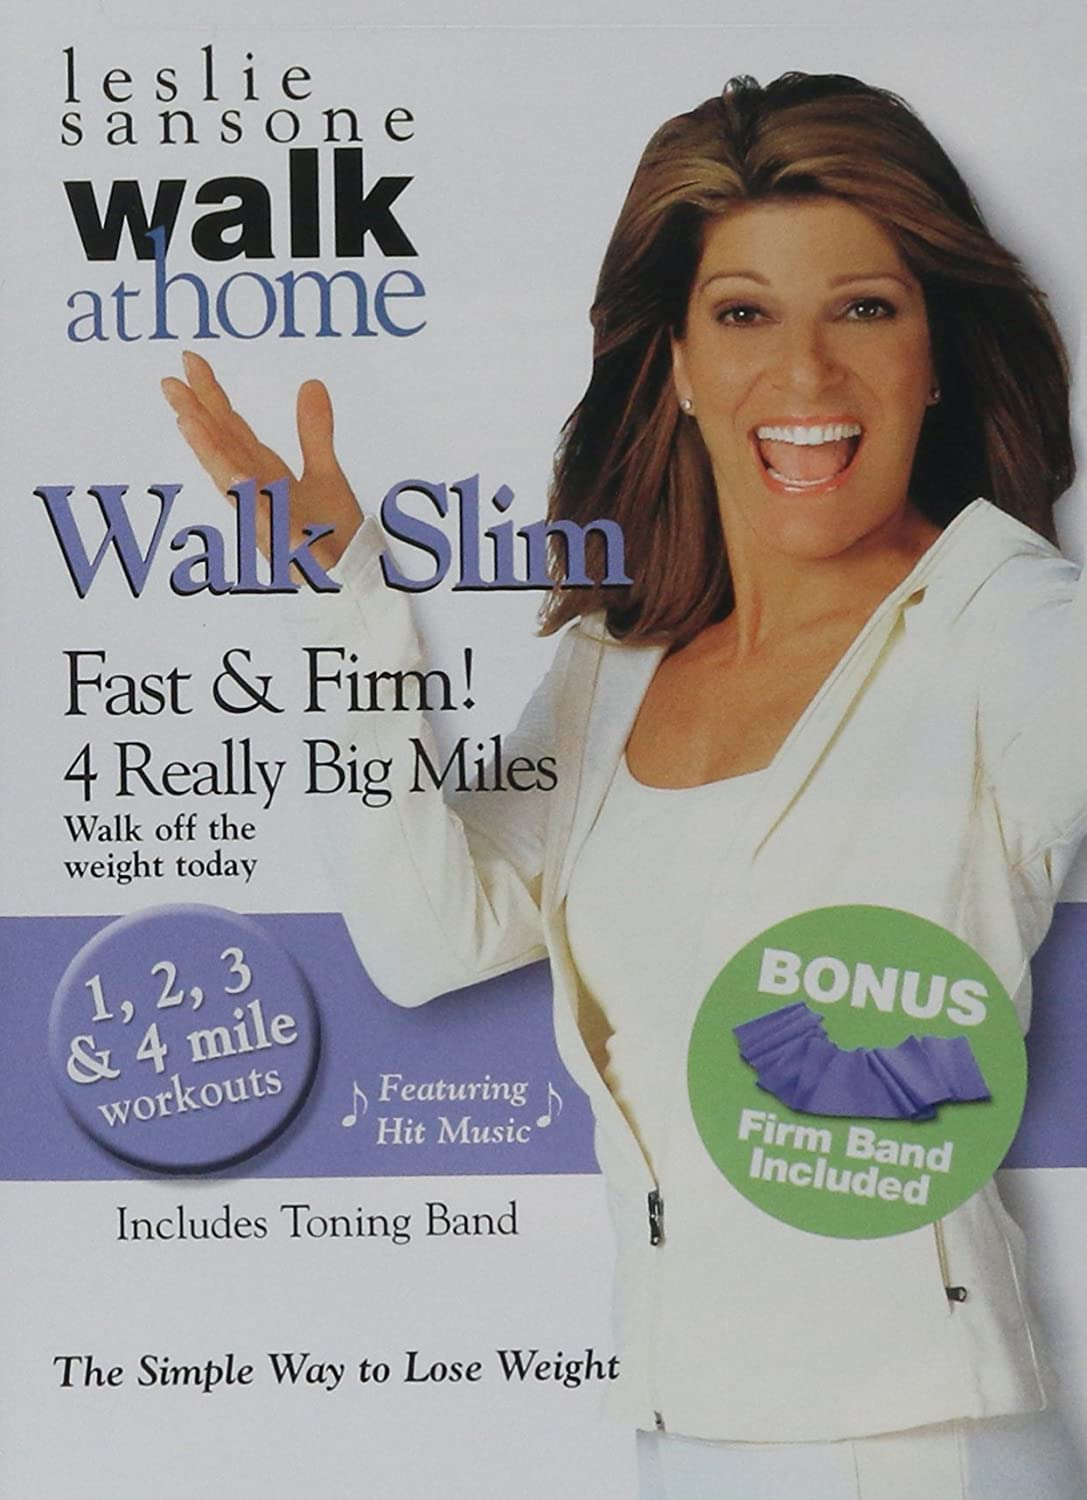 Leslie Sansone Walk Slim: Fast and Firm Big 4 Lowest Large-scale sale price challenge Miles Really